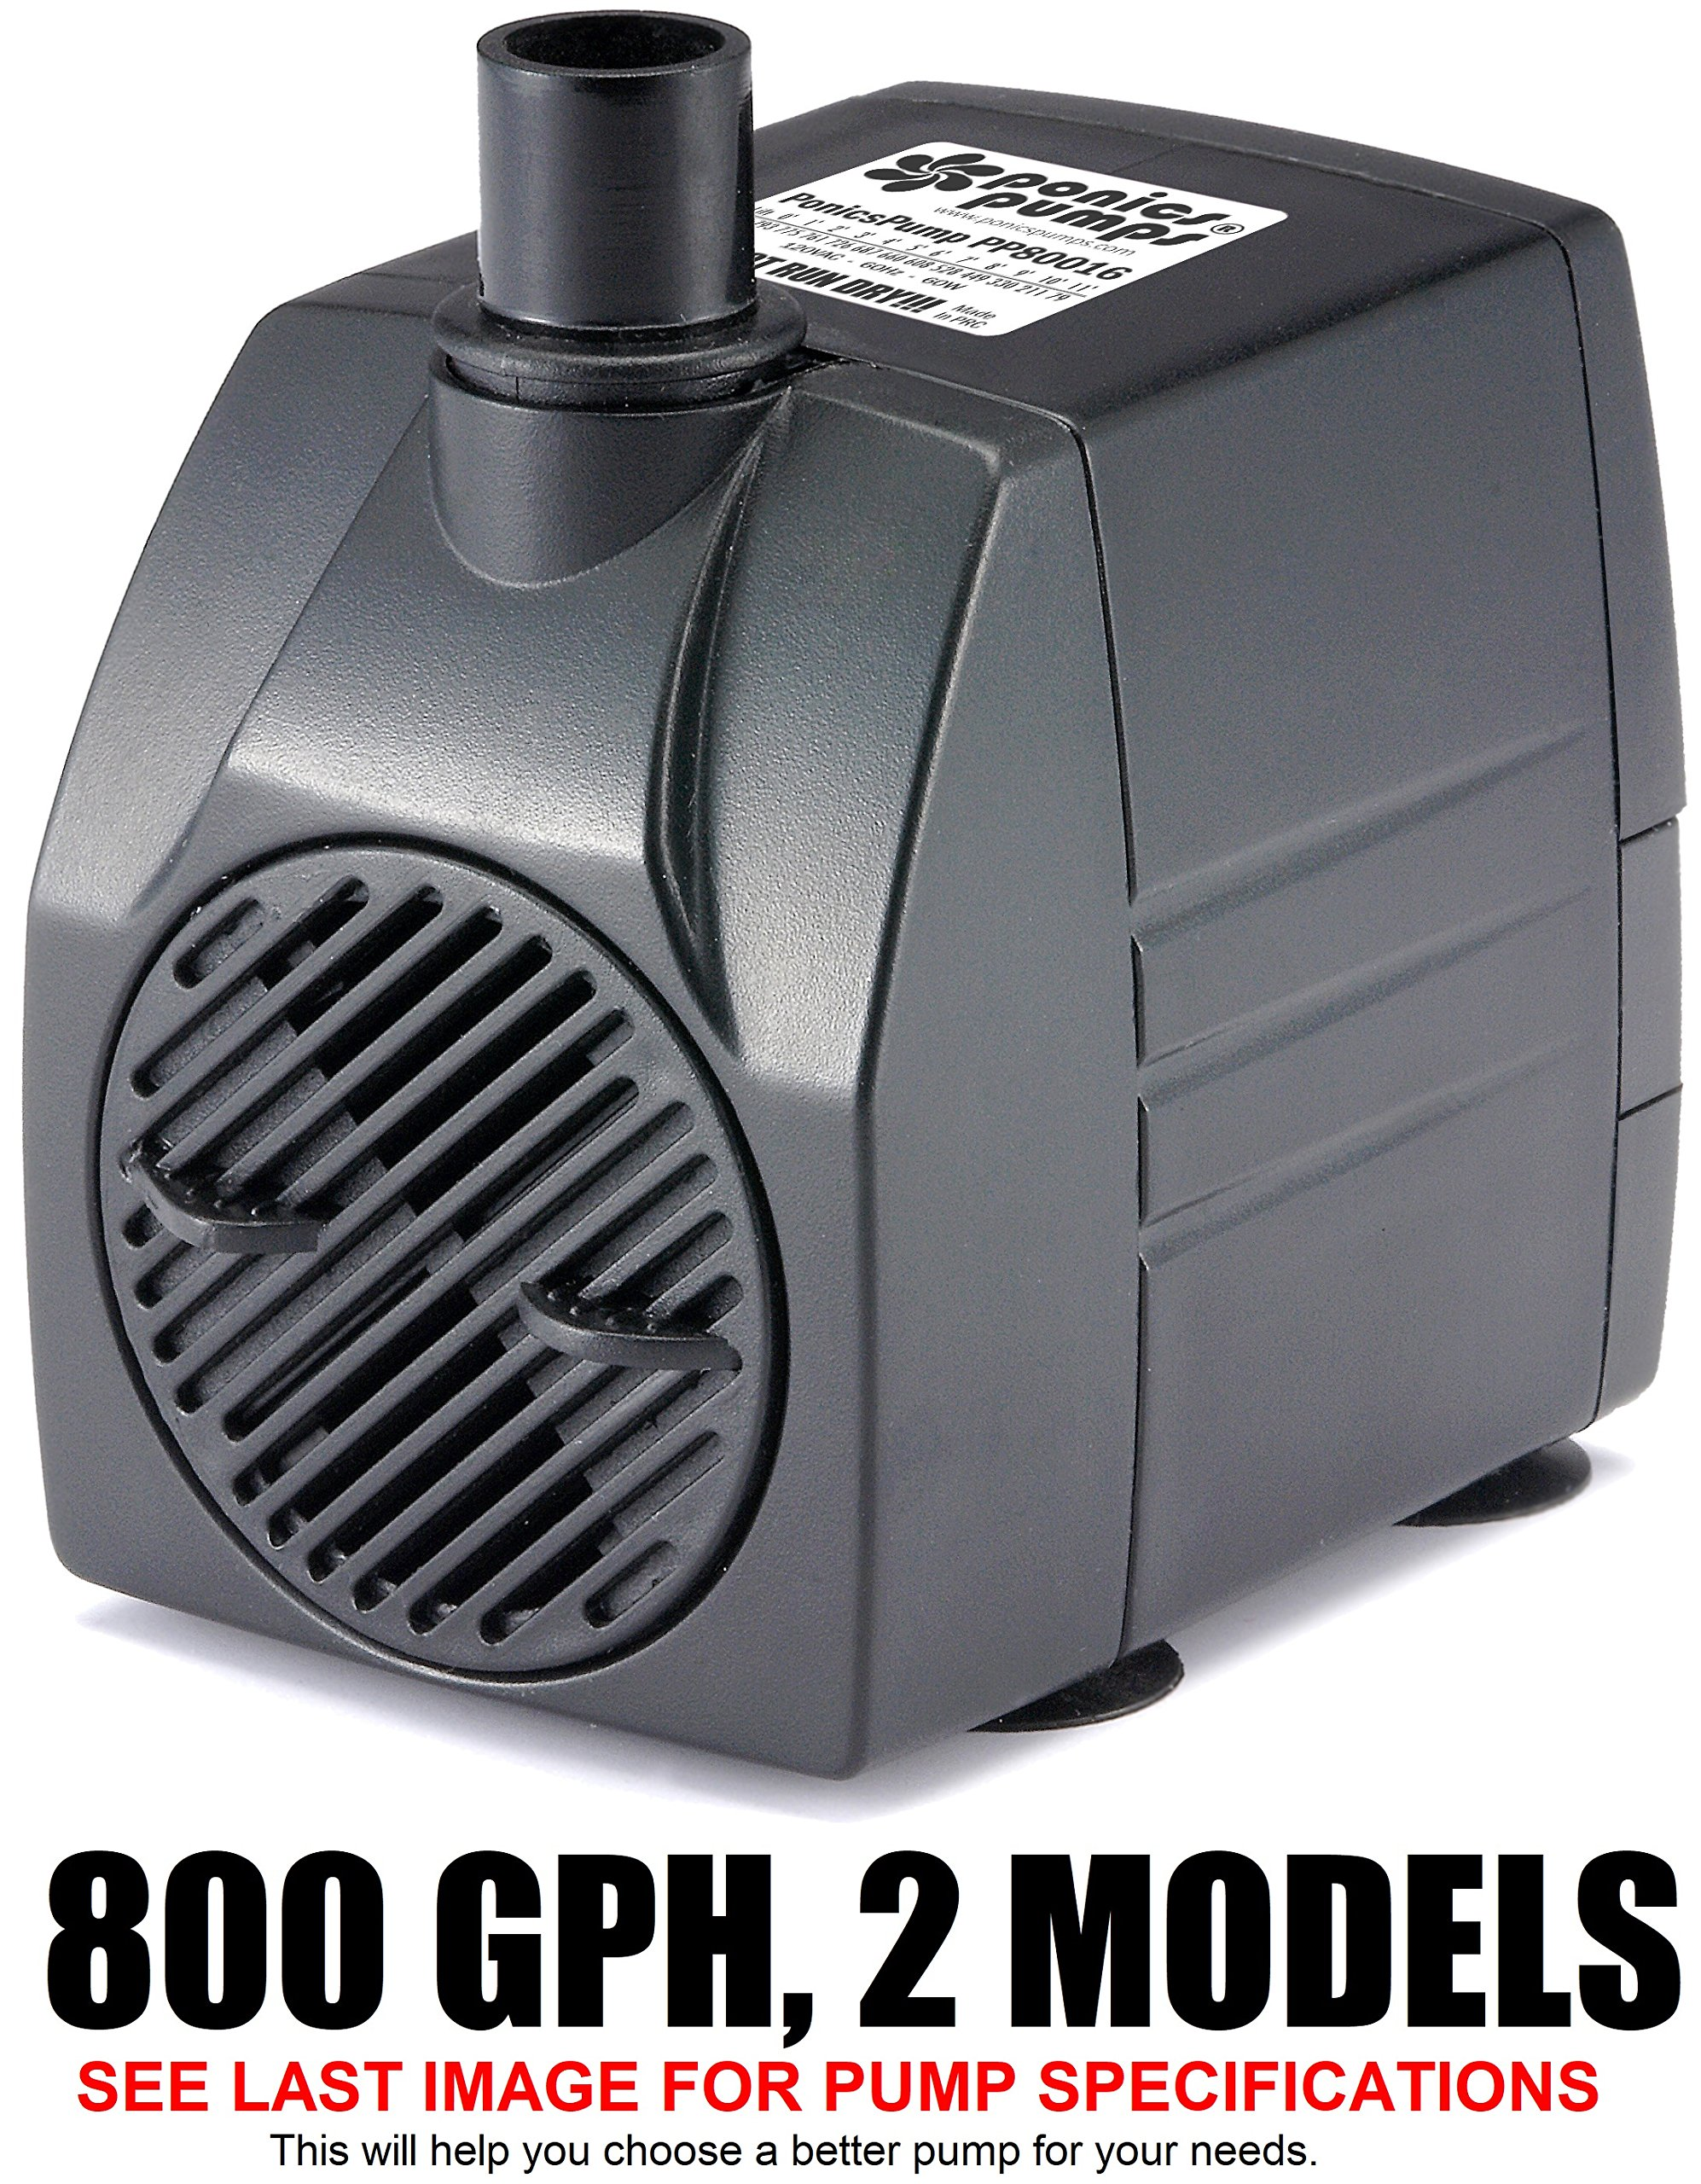 PonicsPump PP80016: 800 GPH Submersible Pump with 16' Cord - 60W... for Hydroponics, Aquaponics, Fountains, Ponds, Statuary, Aquariums, Waterfalls & more. Comes with 1 year limited warranty.